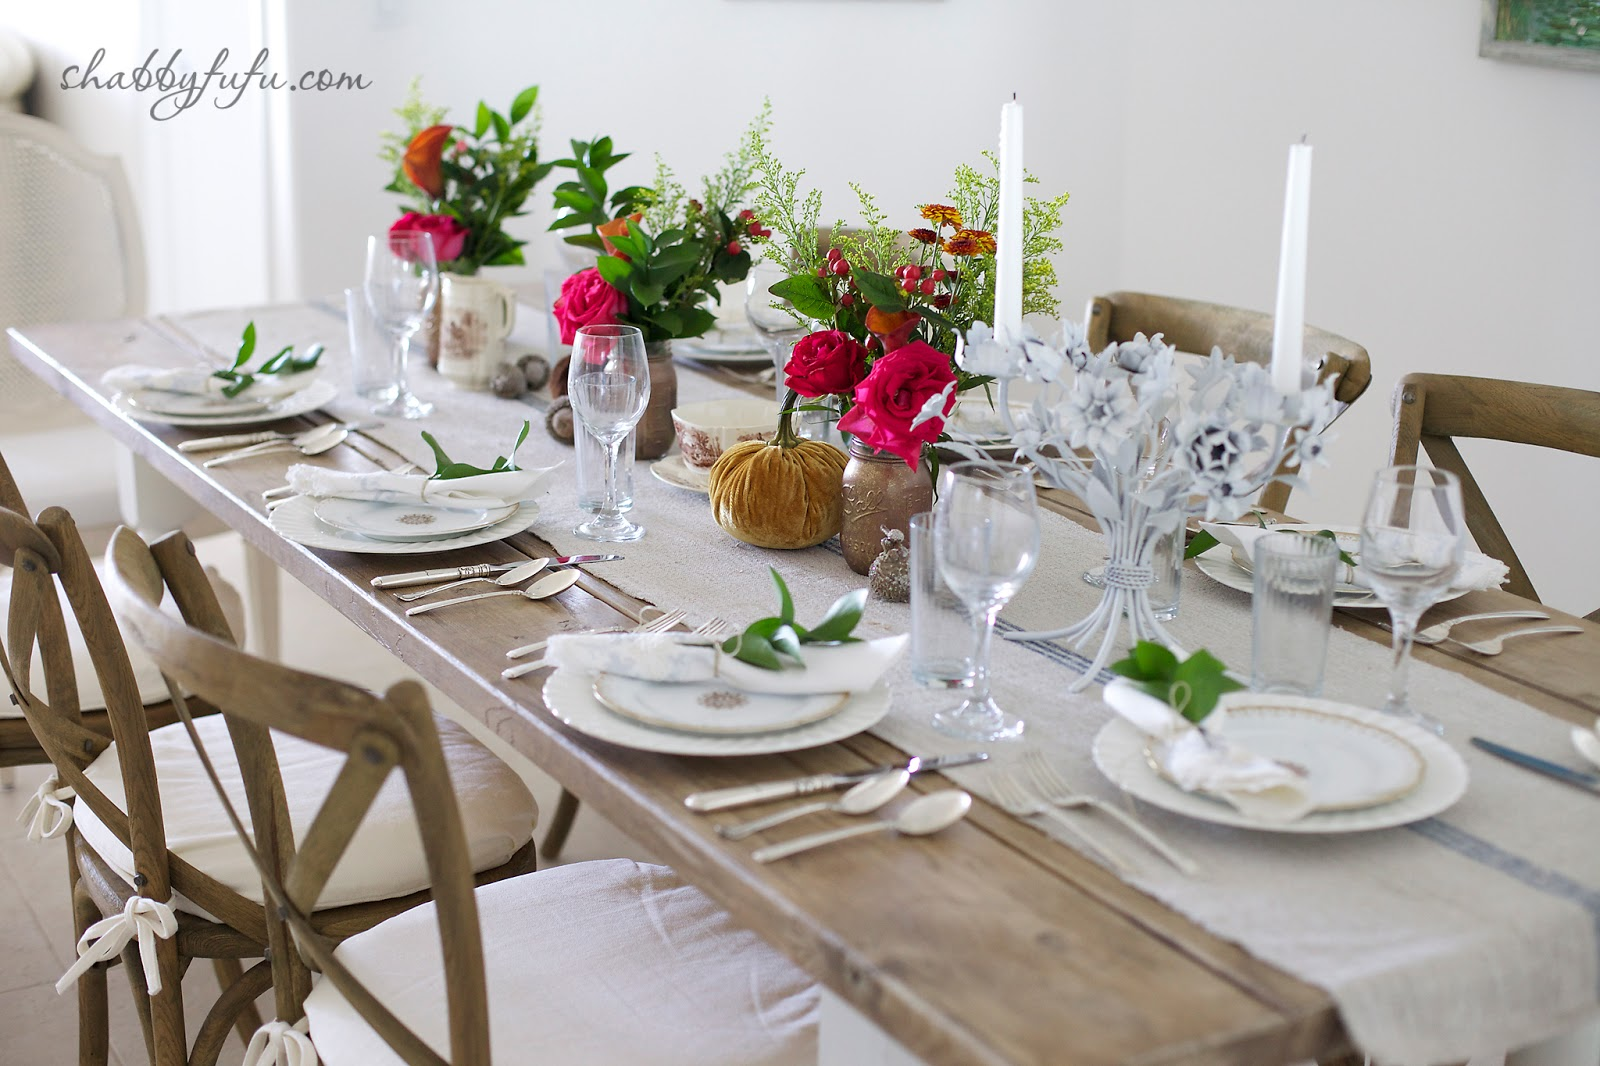 Thanksgiving Beach House decor - tablescape with white cloth runner and bright fall flower centerpieces